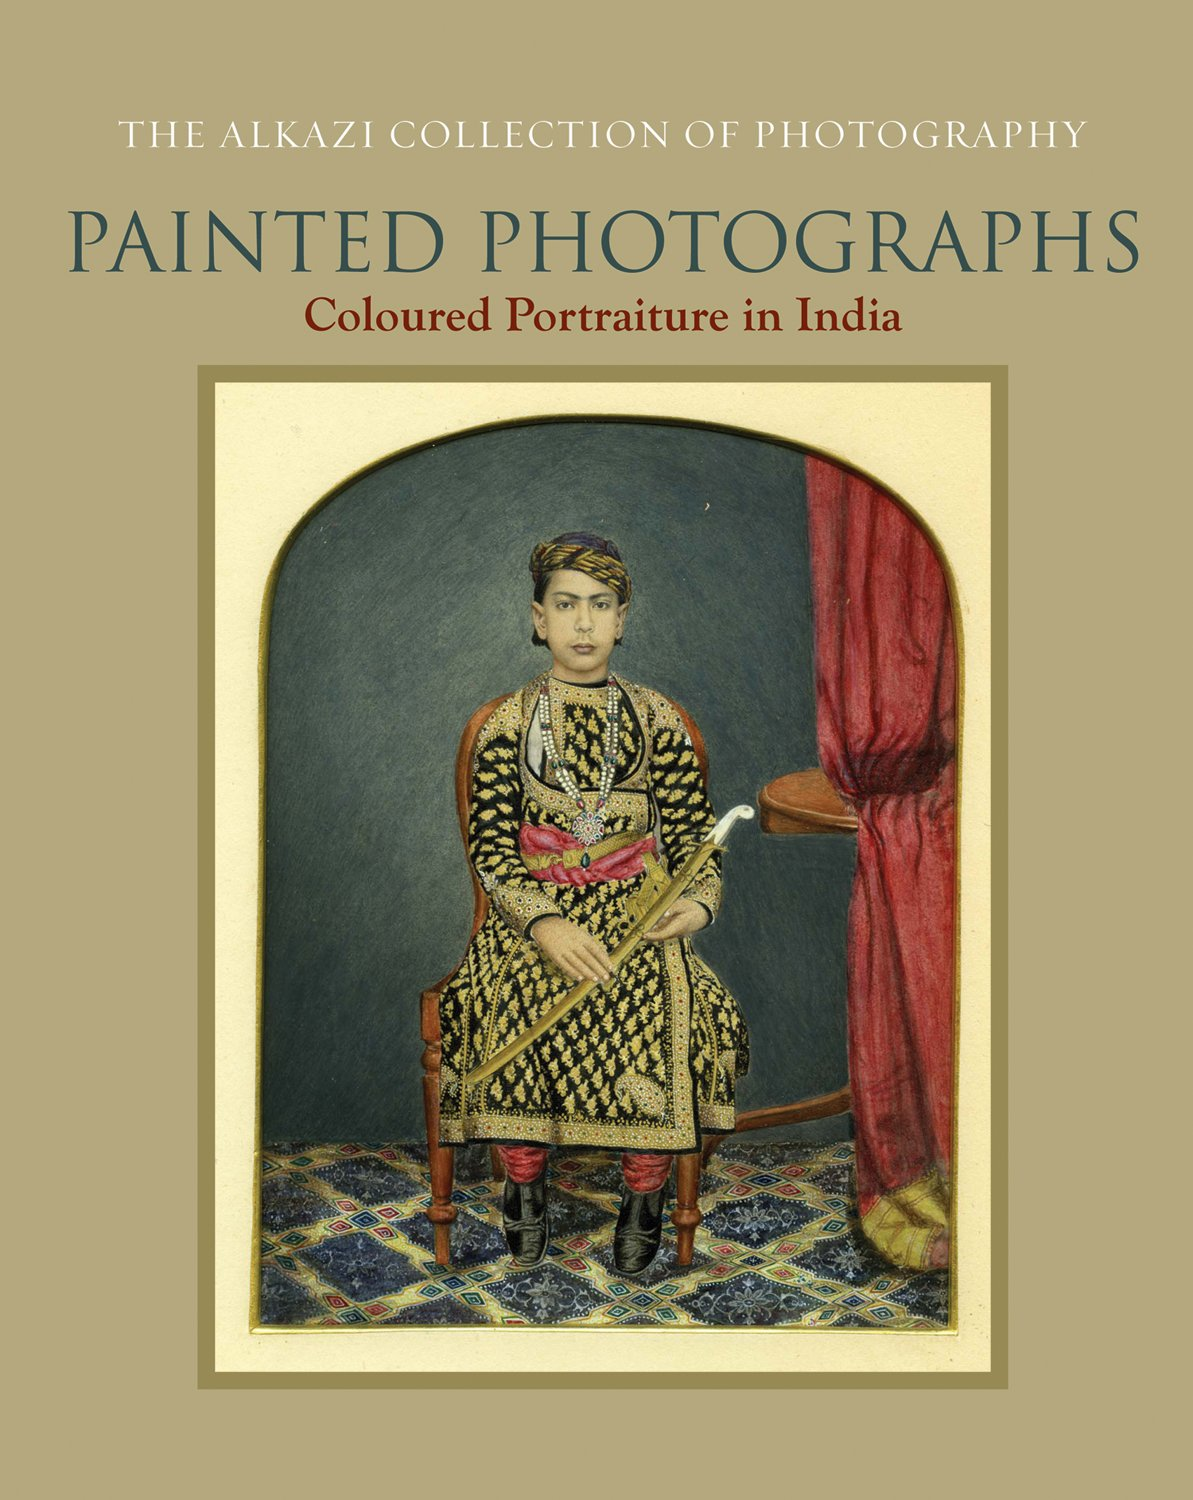 Download Painted Photographs: Colored Portraiture In India PDF